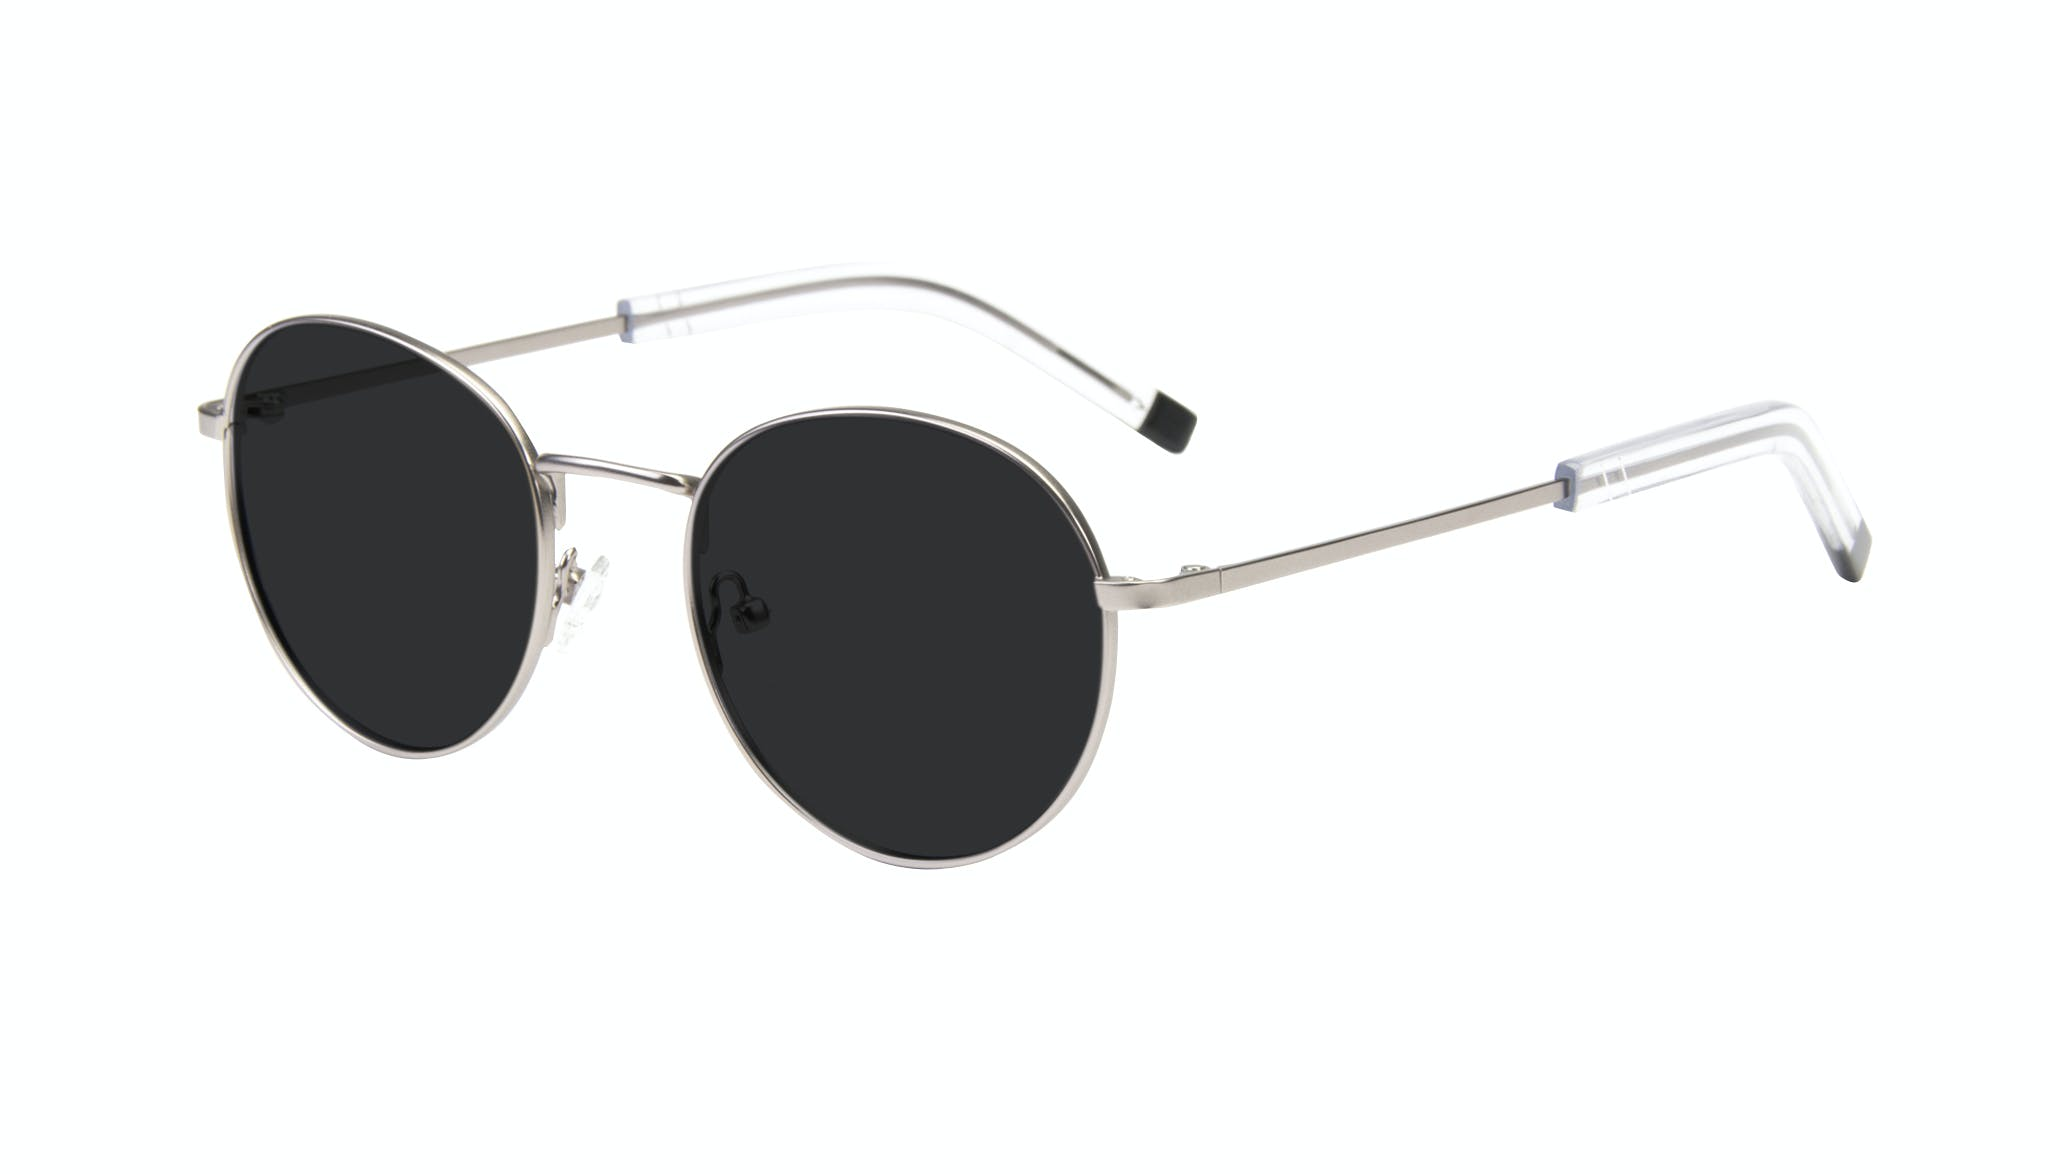 Affordable Fashion Glasses Round Sunglasses Men Lean Steel Tilt